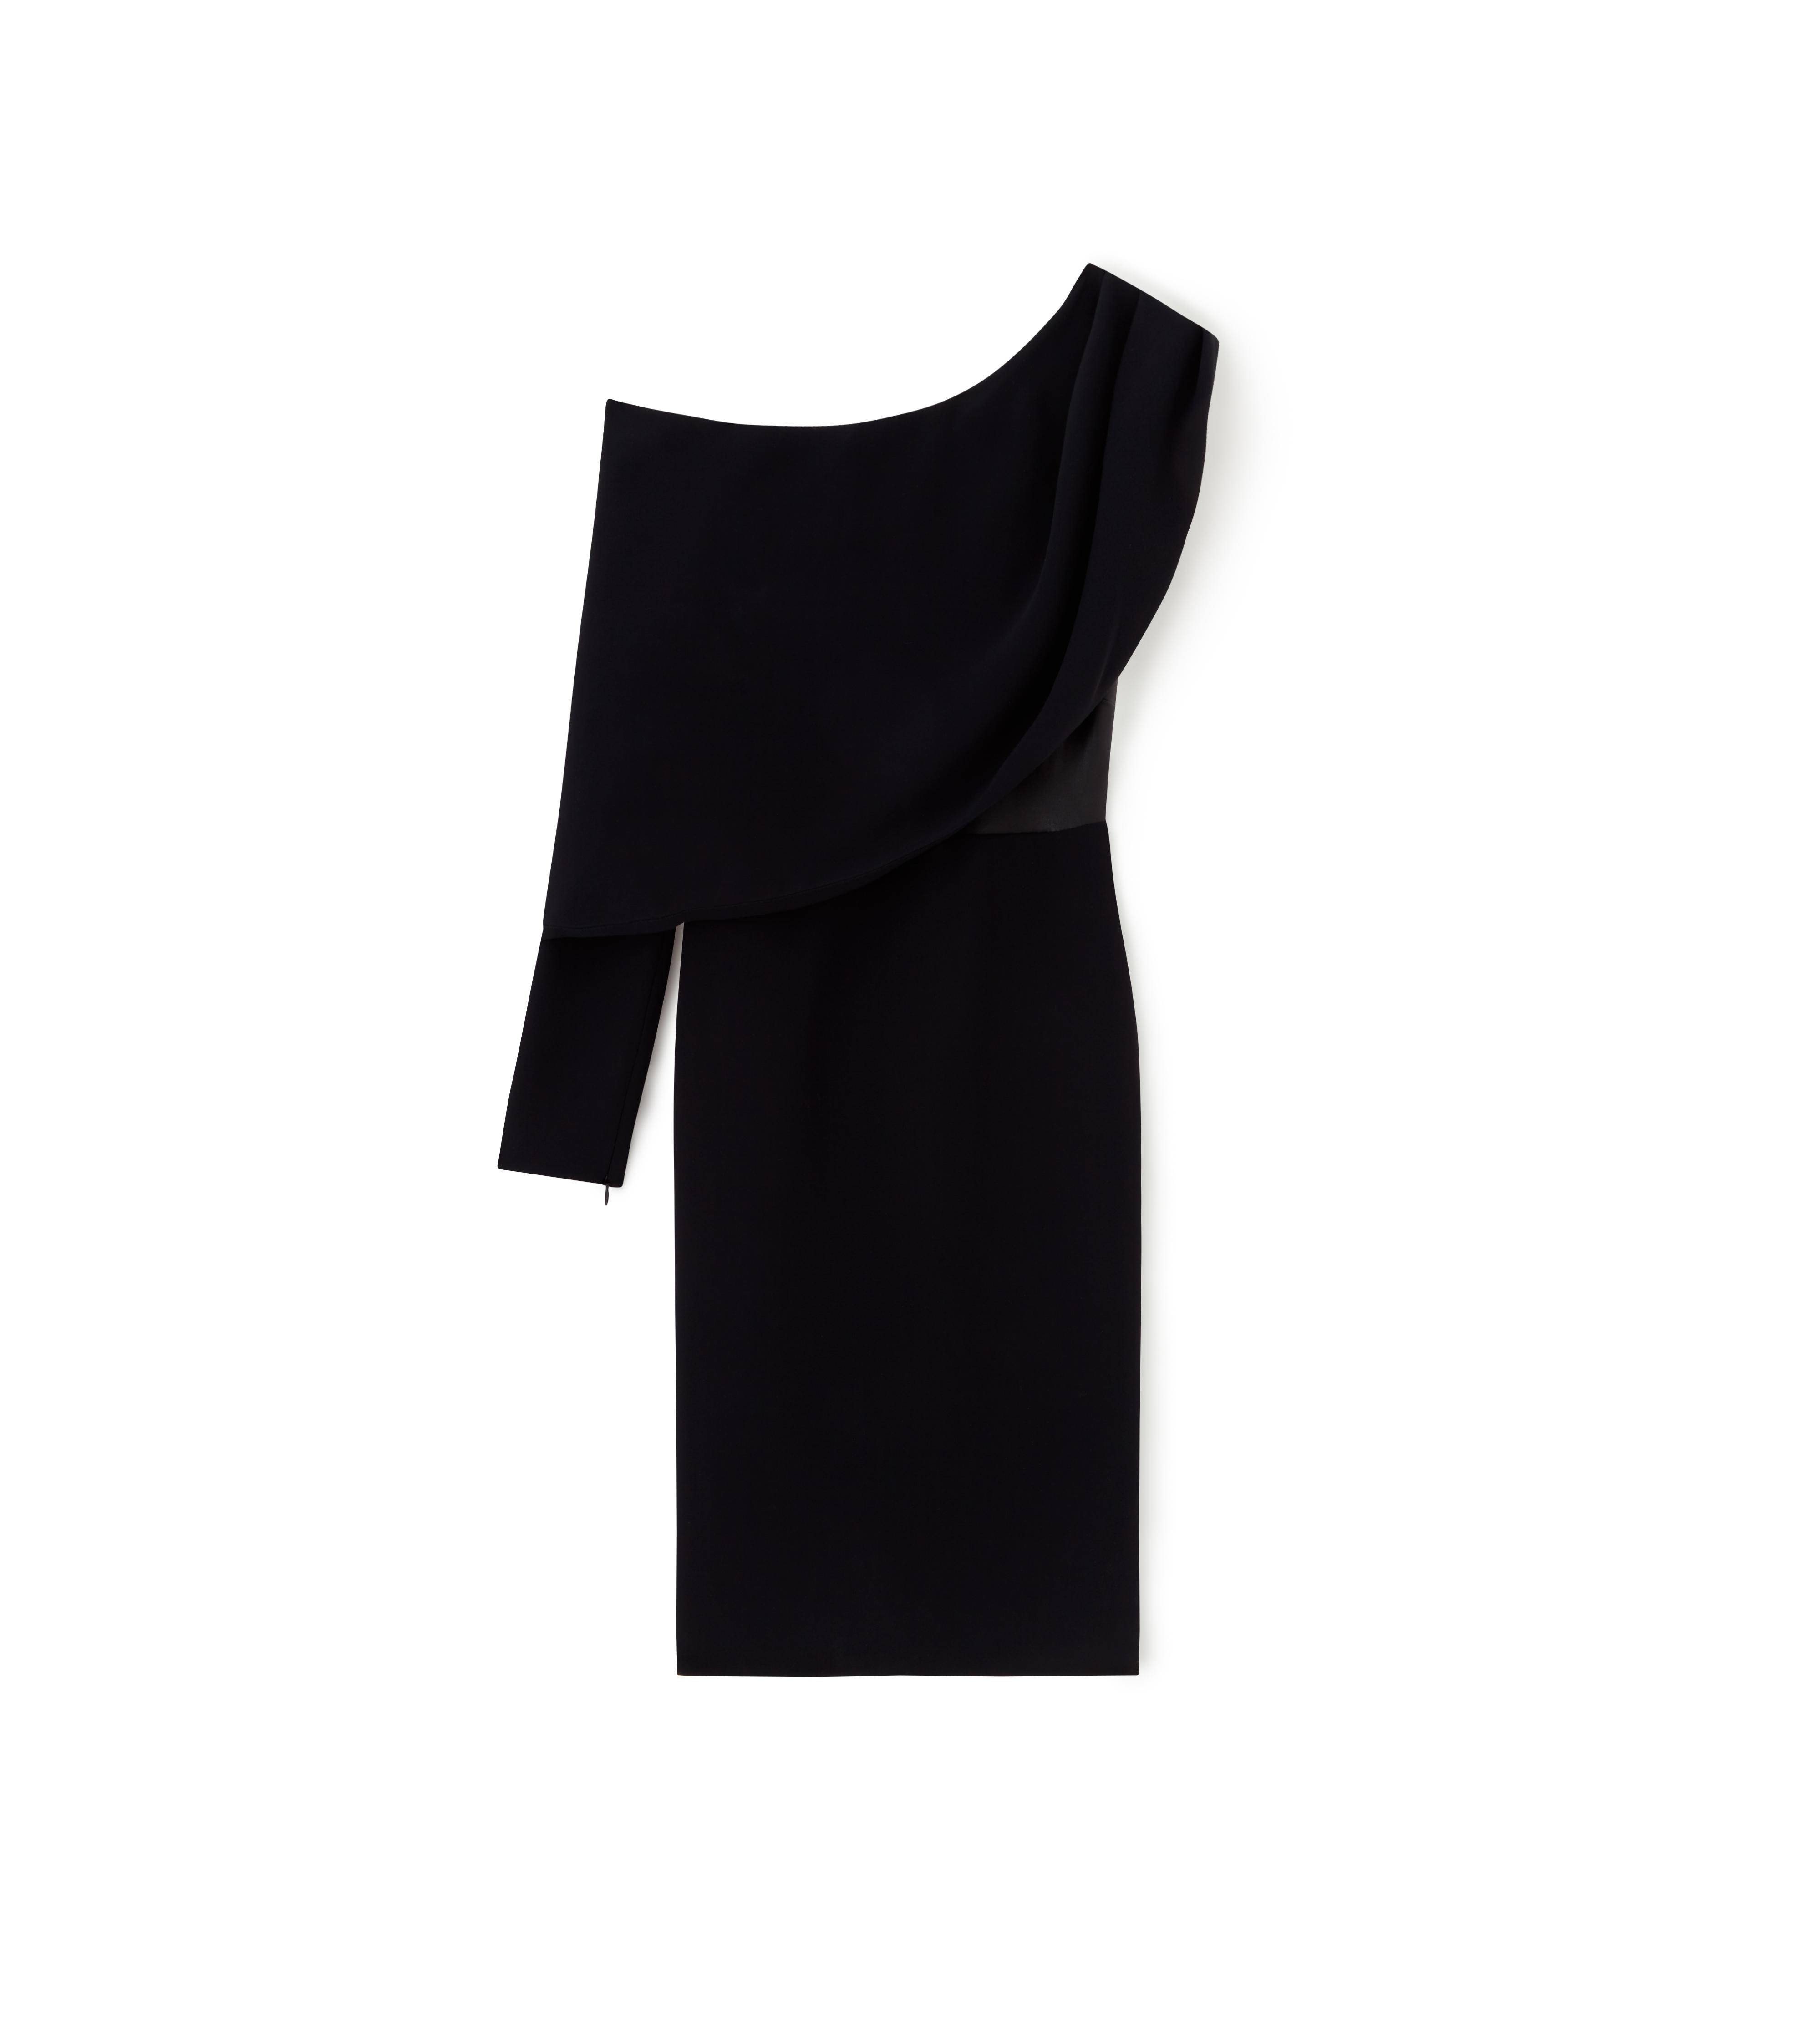 SILK ASYMMETRICAL COCKTAIL DRESS WITH LEATHER CORSET A thumbnail